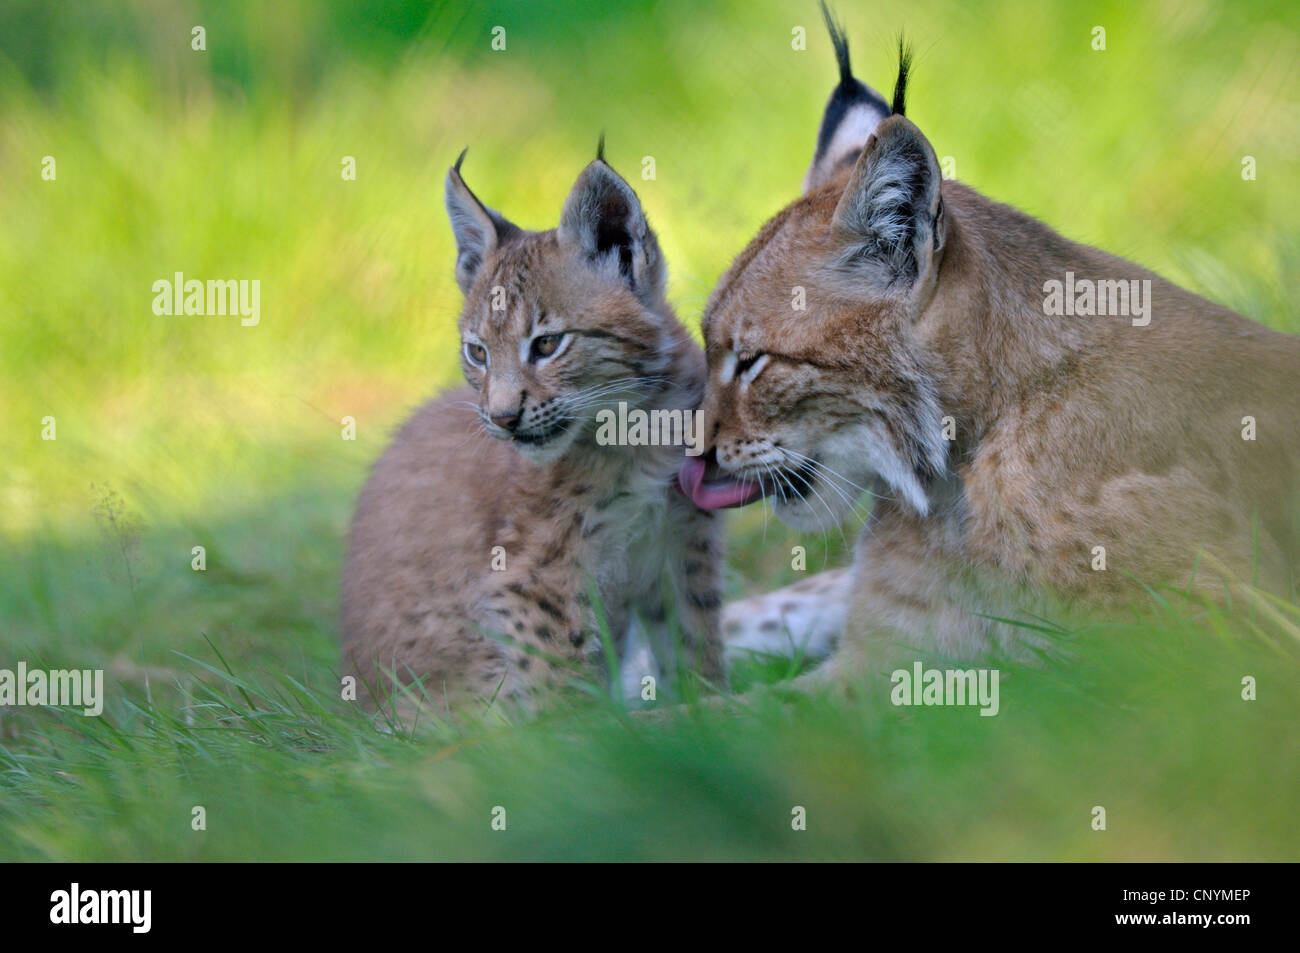 Eurasian lynx (Lynx lynx), mother with juvenile cleaning each other's fur Stock Photo